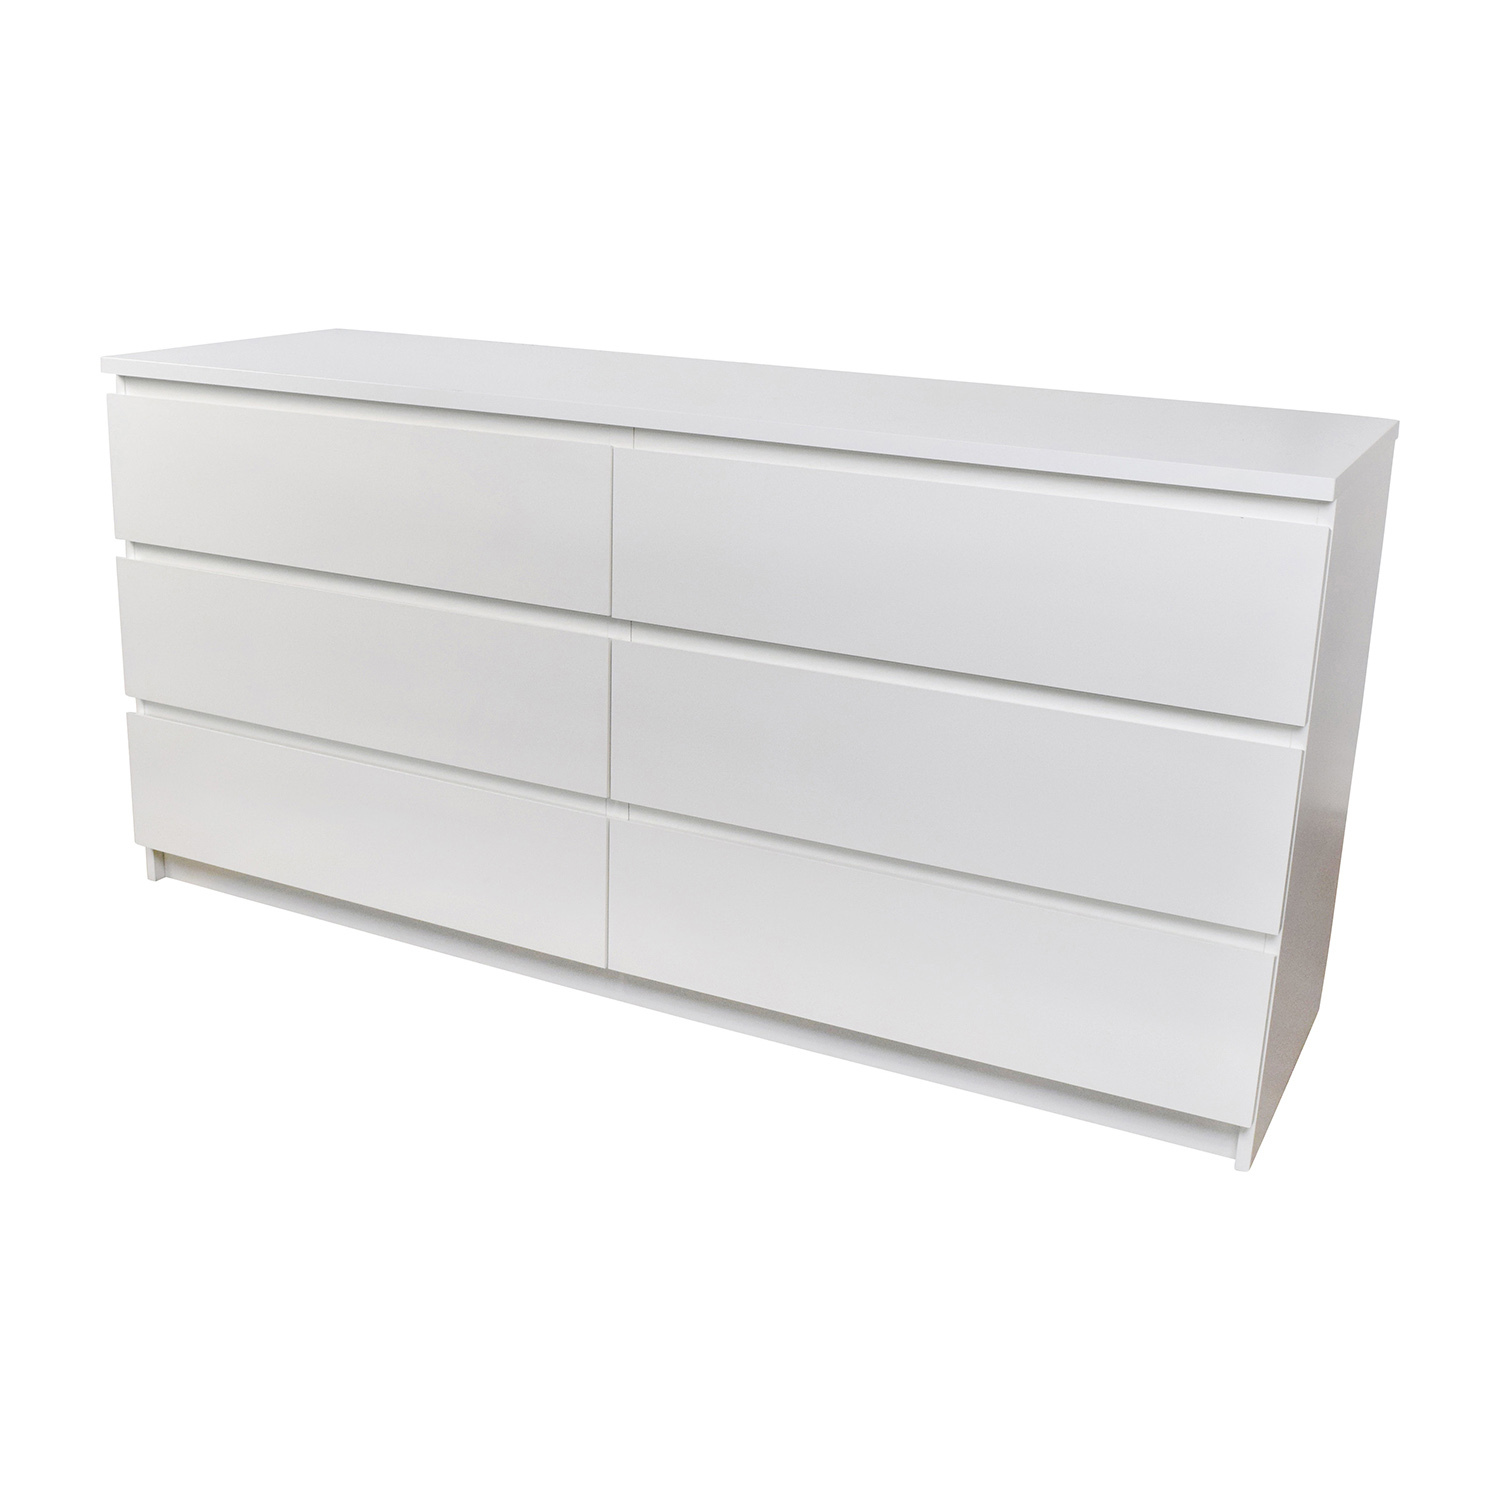 26 off ikea ikea malm 6 drawer white dresser storage. Black Bedroom Furniture Sets. Home Design Ideas